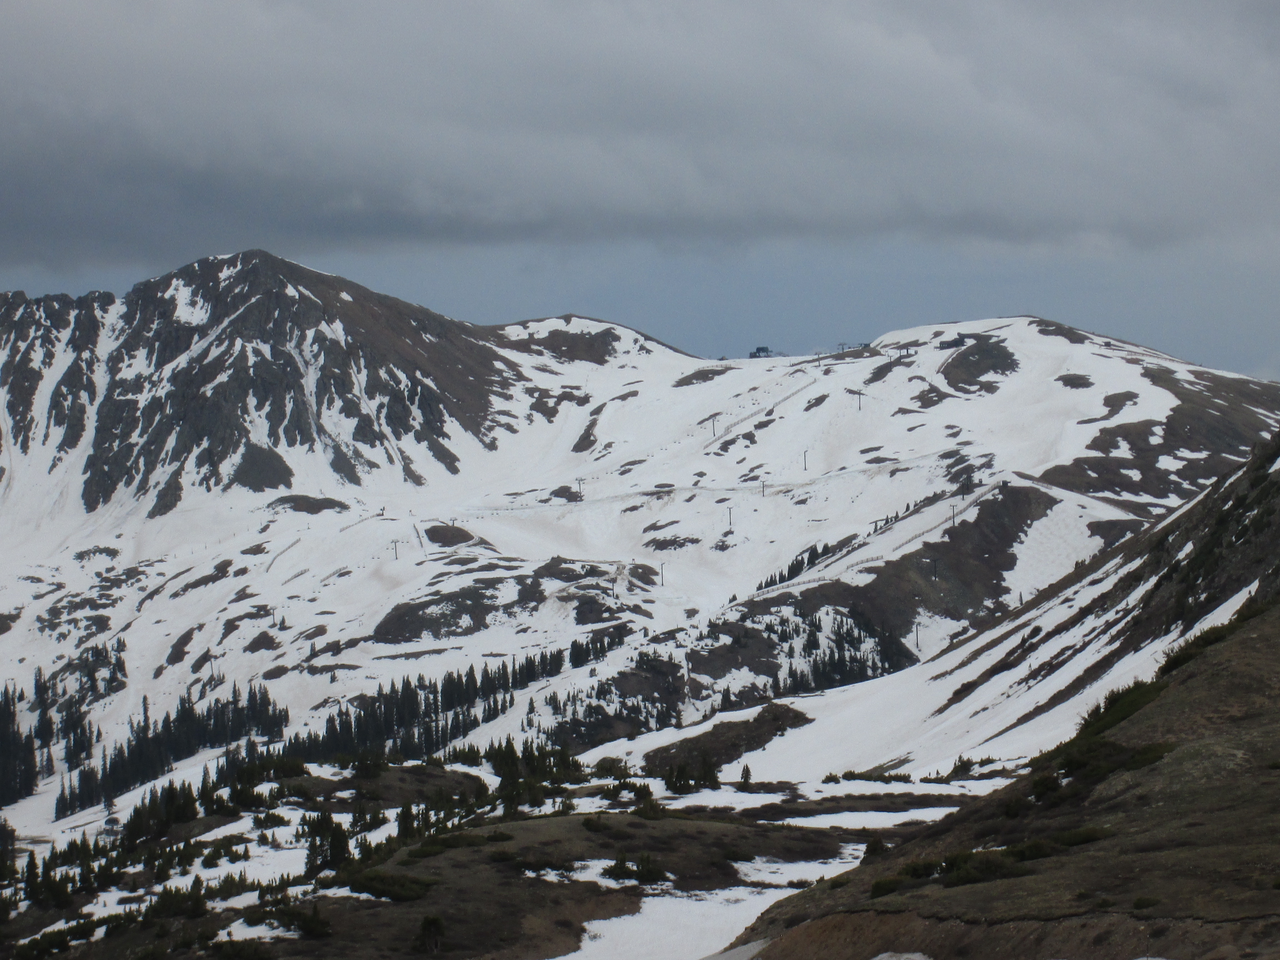 This view on June 16, 2015 of the upper Arapahoe Basin ski area, recently closed, clearly shows the concentration of Colorado Plateau dust in patches produced by wind drifting during wet dust-in-snow deposition on lee slopes, where blowing new snow containing dust decelerates and deposits.